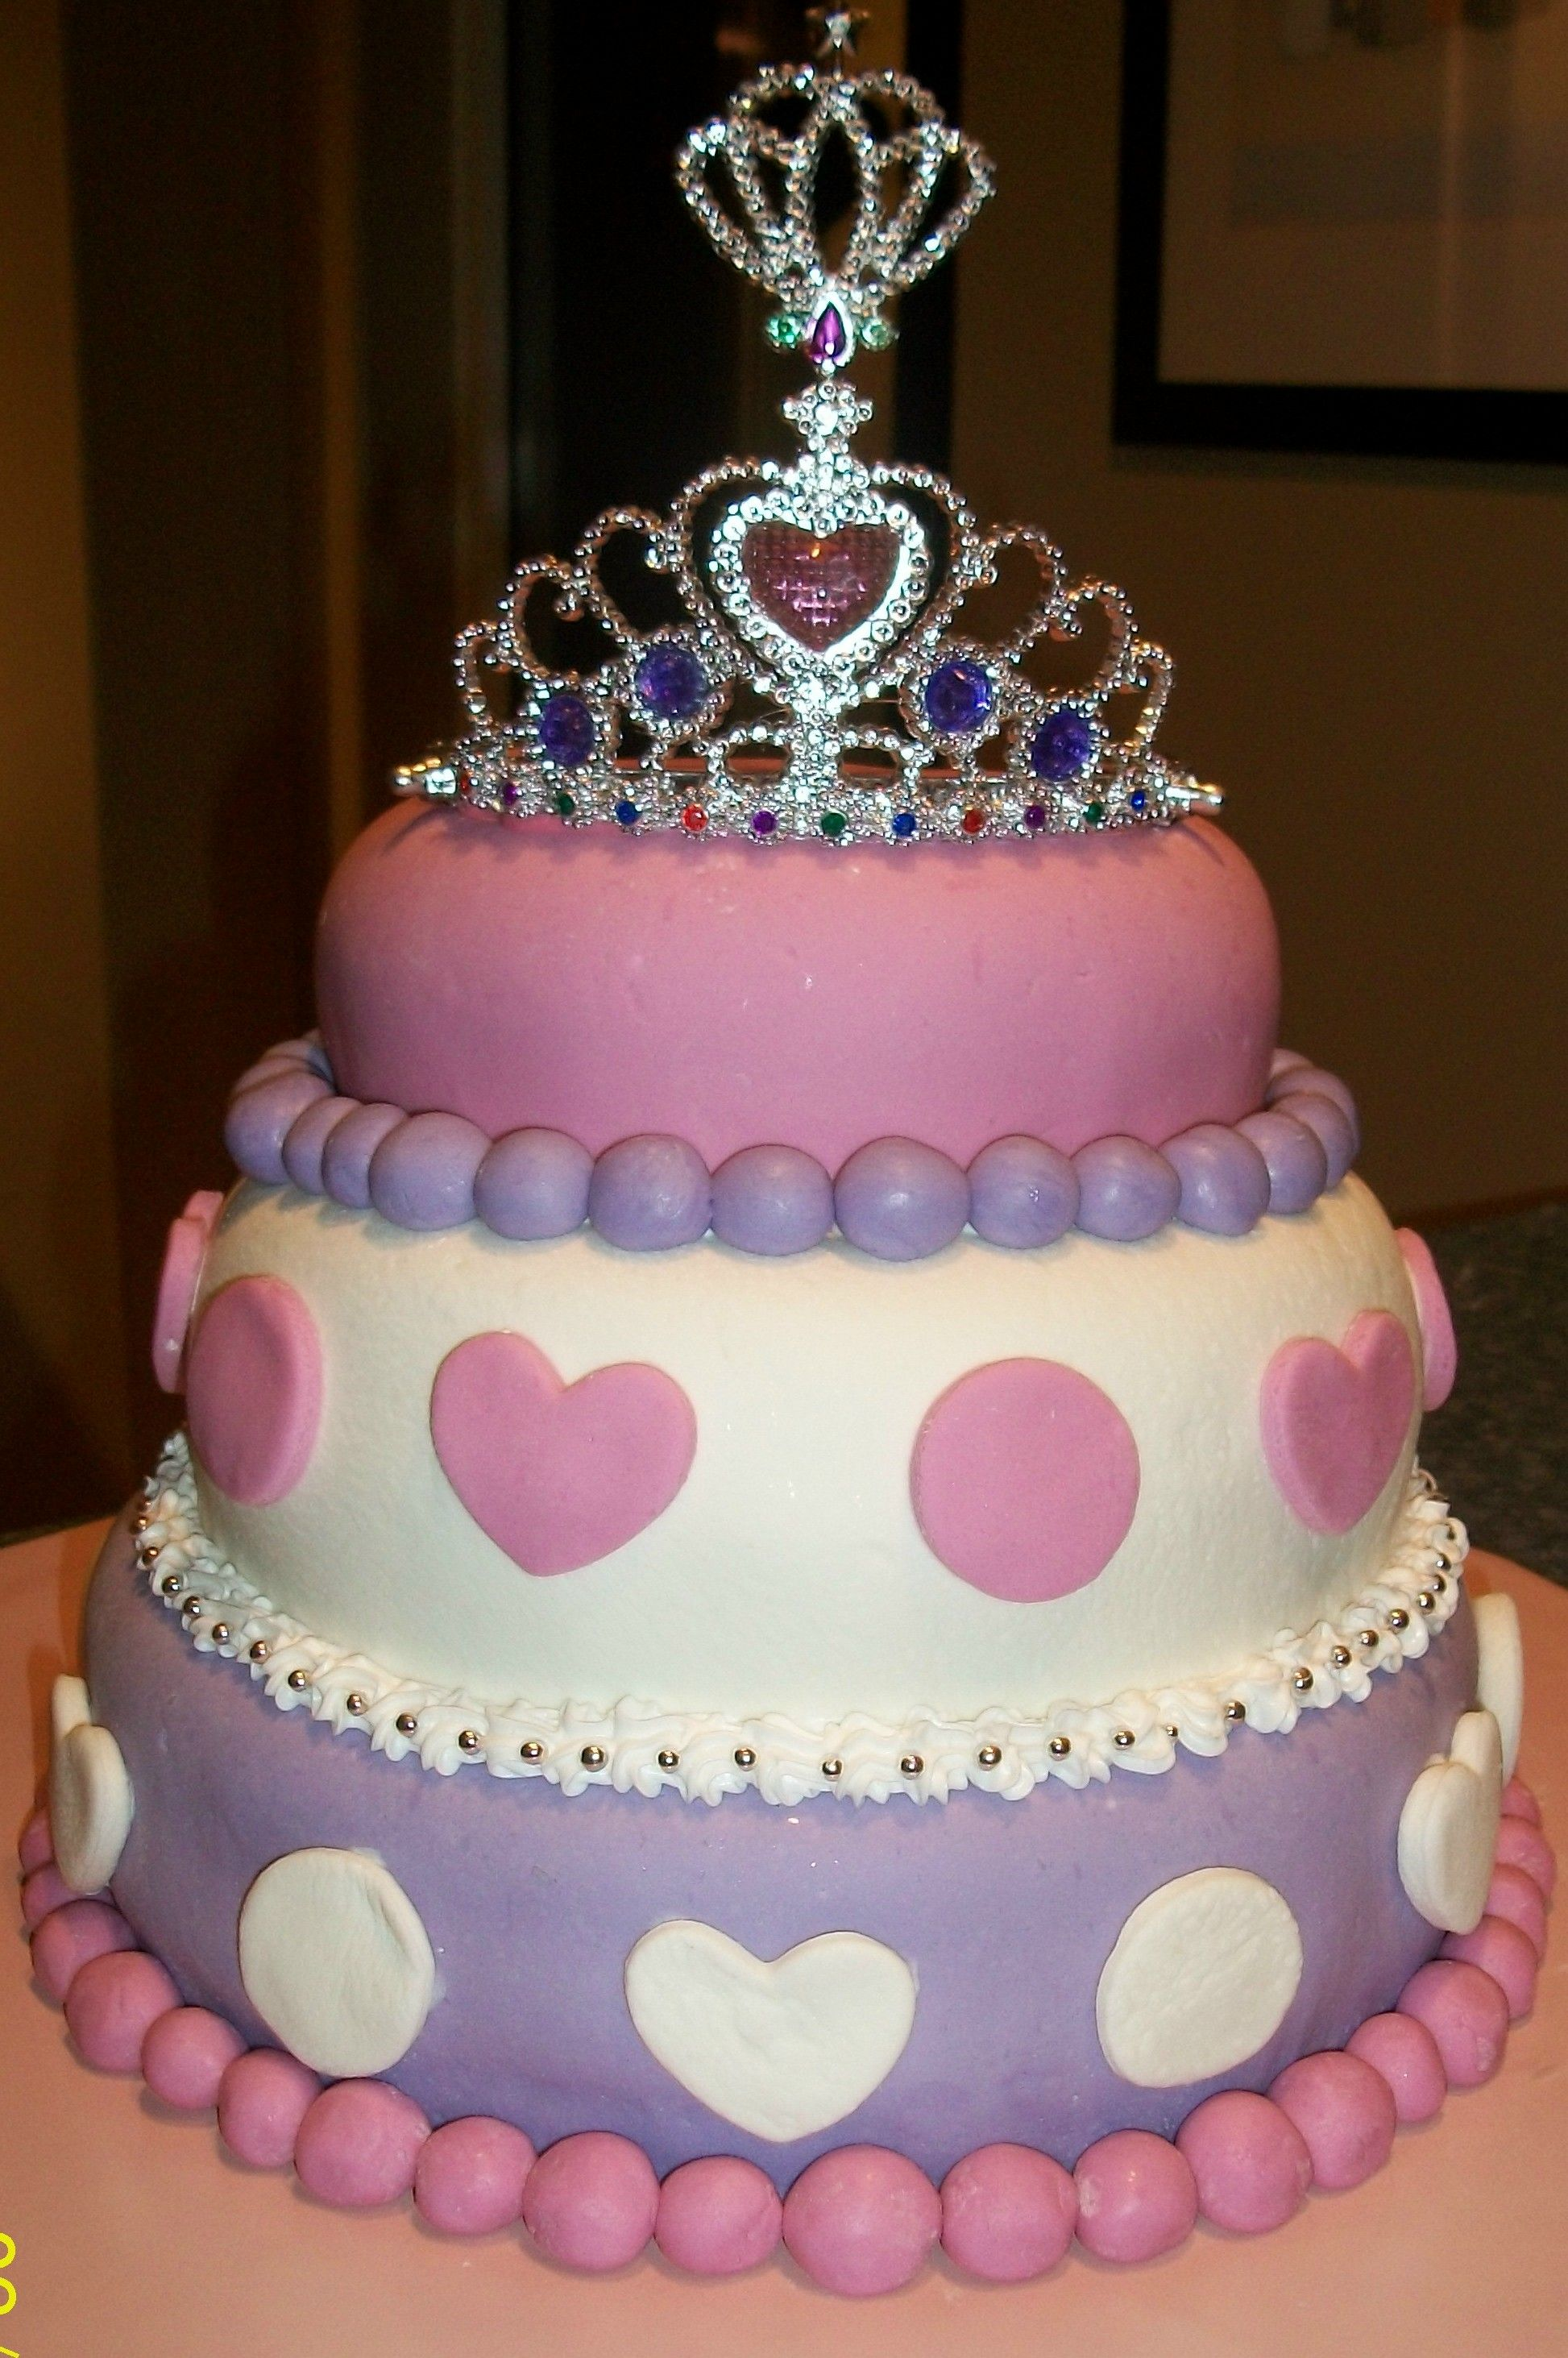 Birthday Cake For 2 Year Old Baby Girl Pictures : 3 year old girls birthday cake pictures princess cakes ...